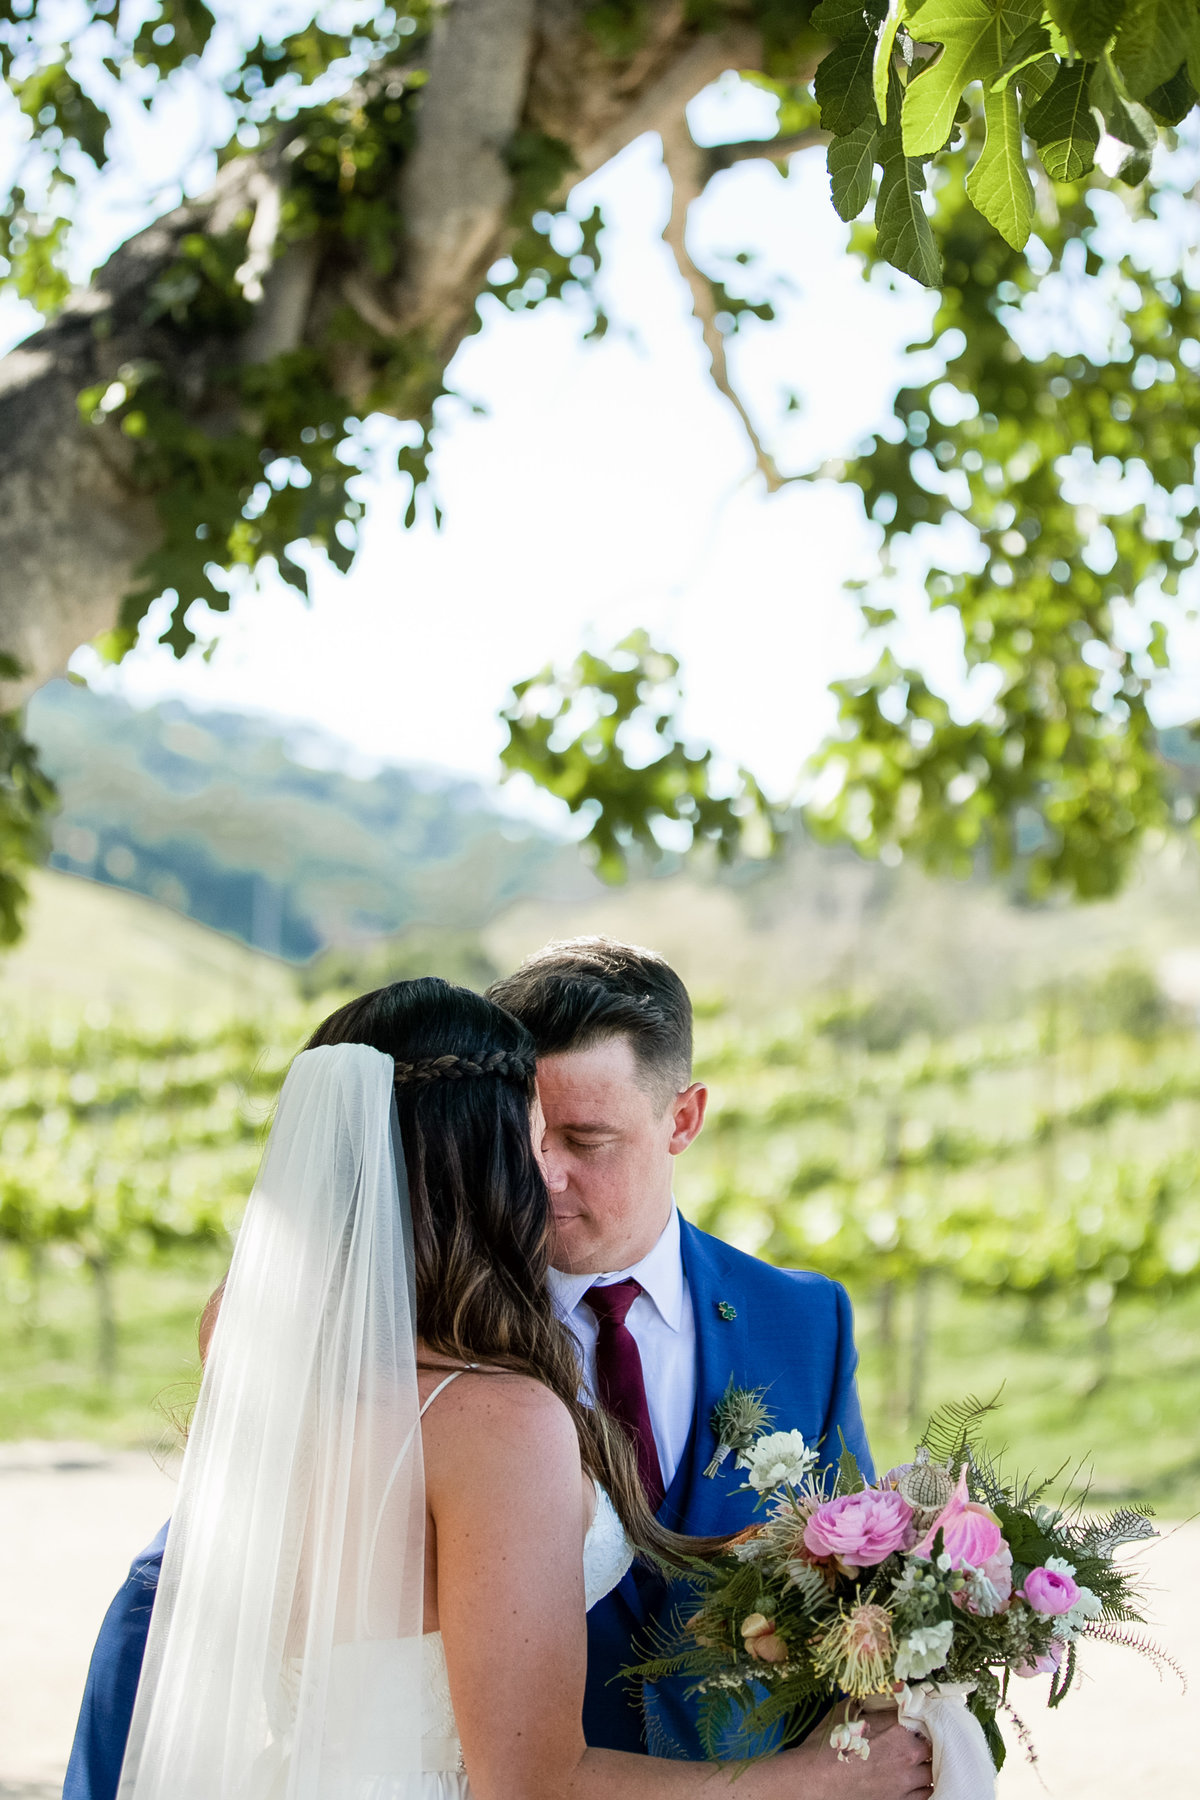 Romantic Spring Elopement  bride and groom in vineyard with Spring bouquet at Higuera Ranch  in San Luis Obispo  by Amy Britton Photography Photographer in St. Louis